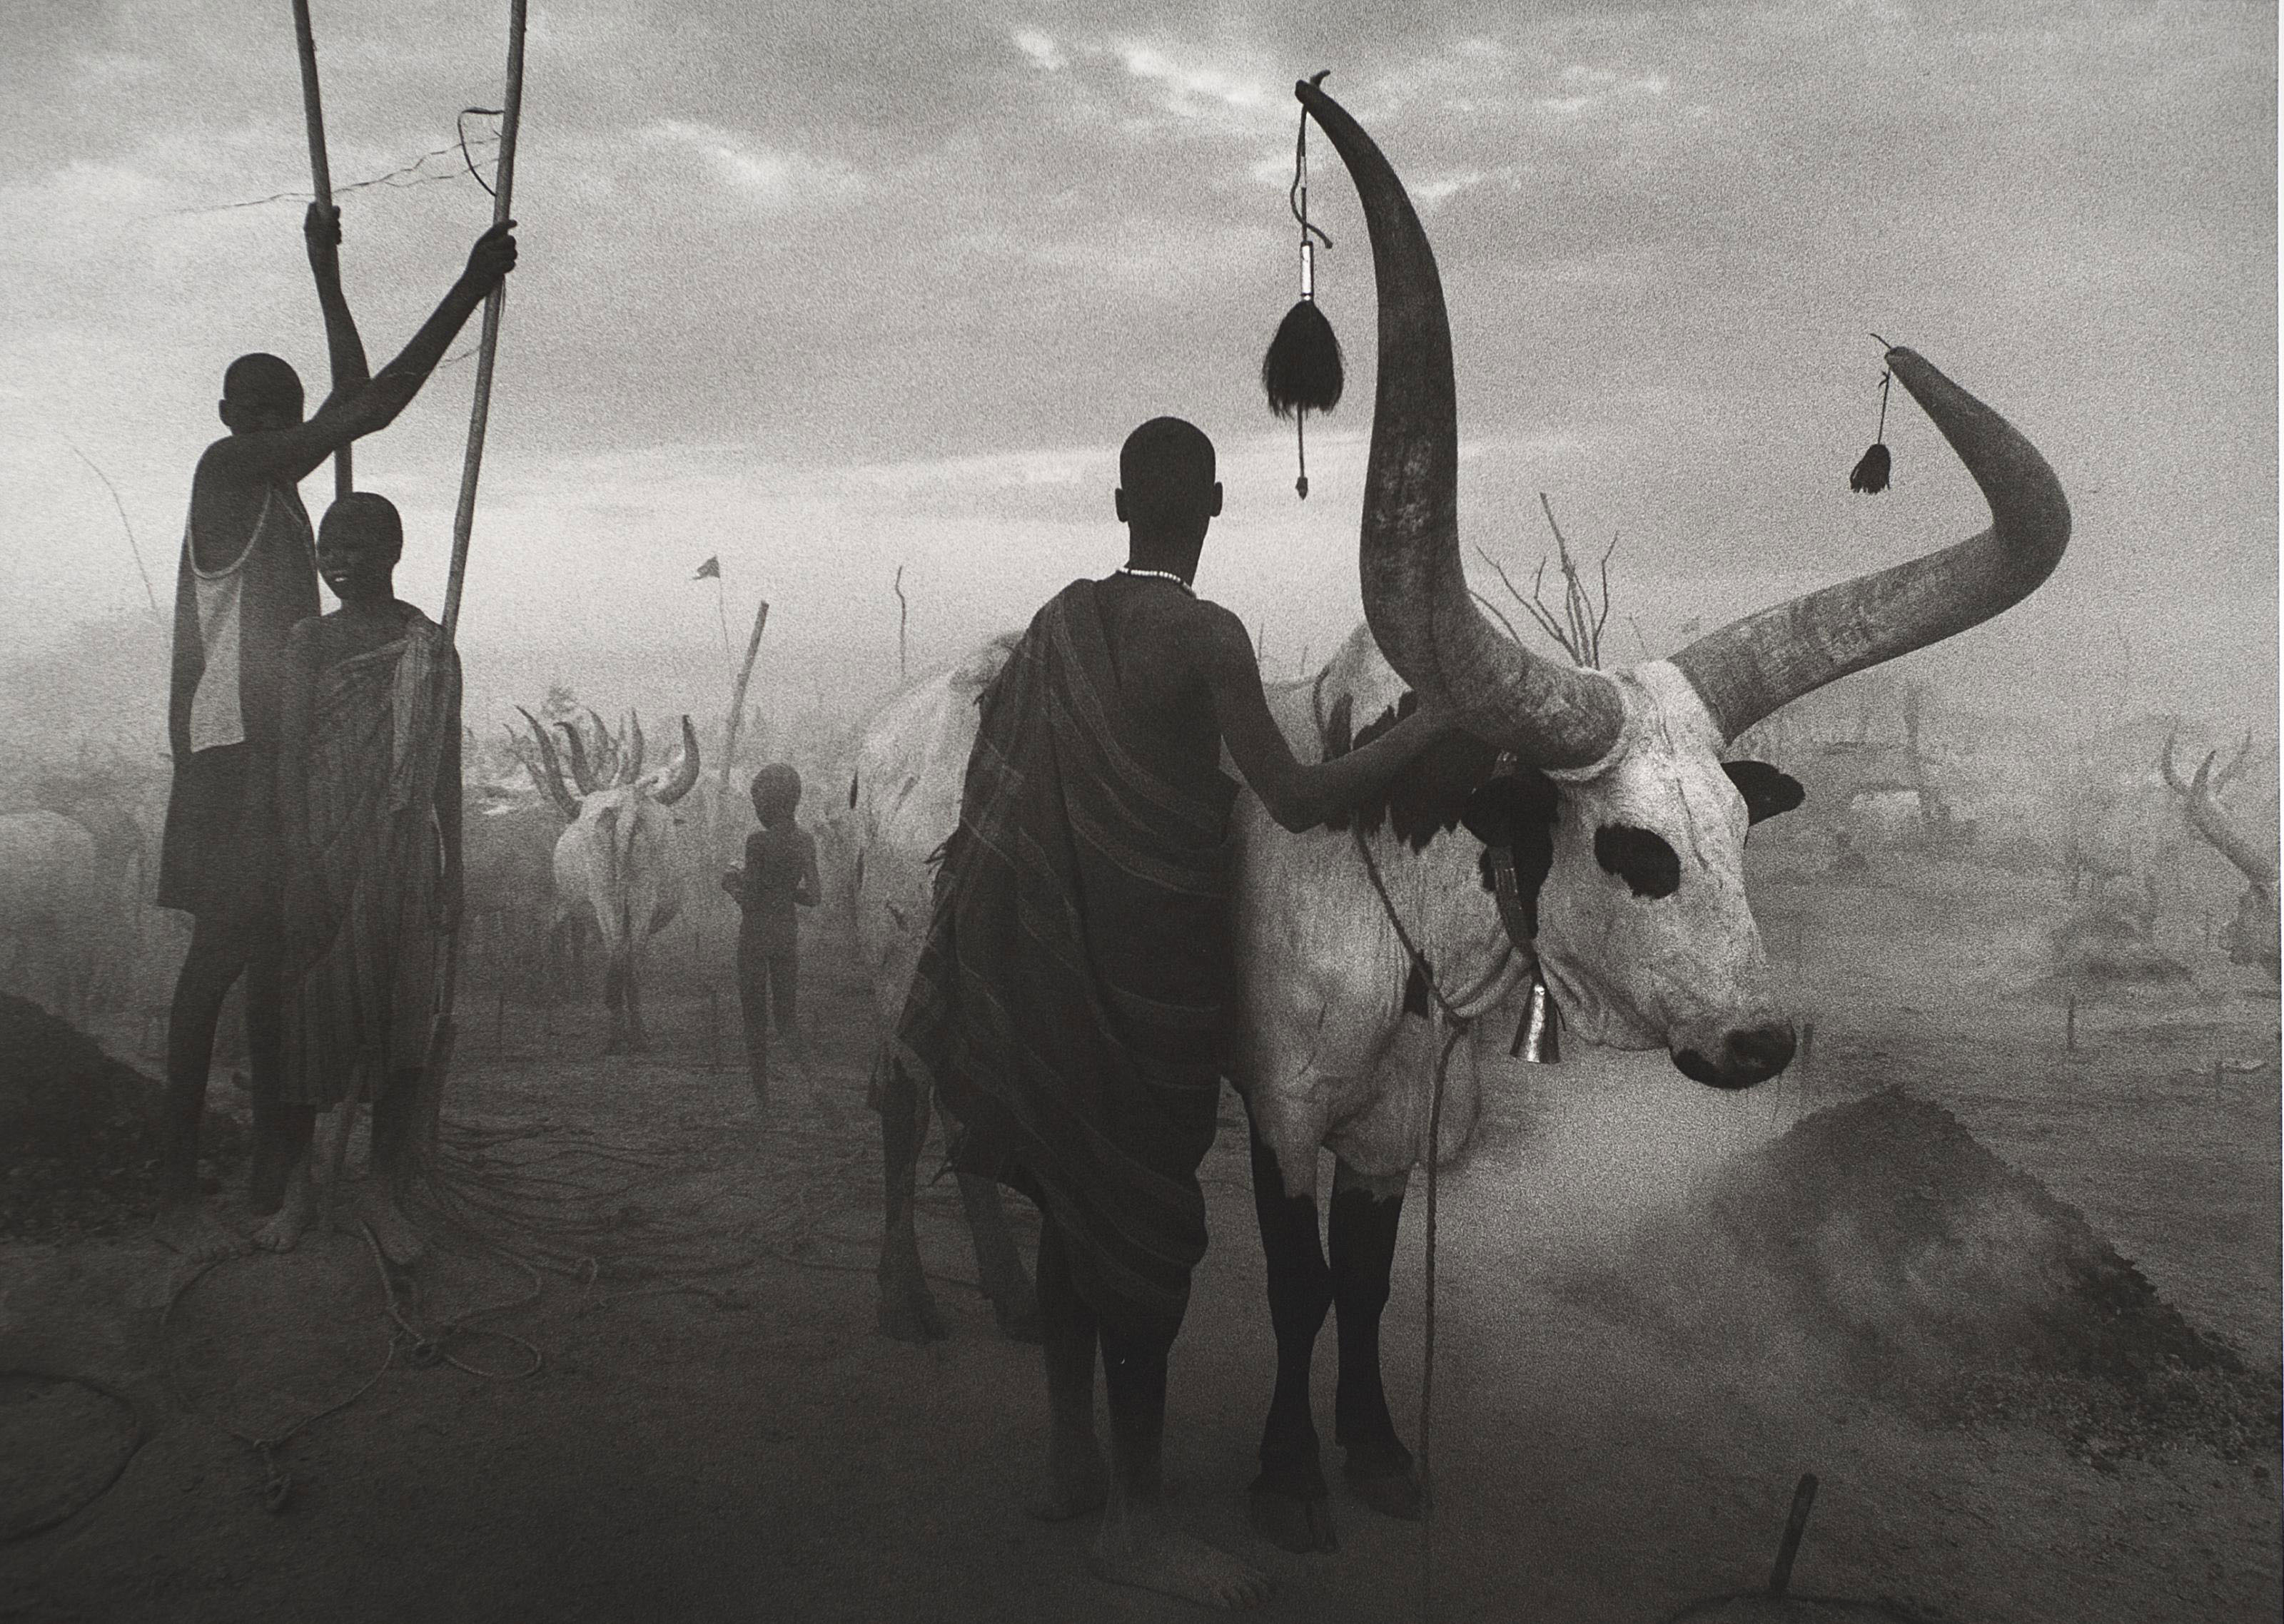 Sudan Cattle, 2006